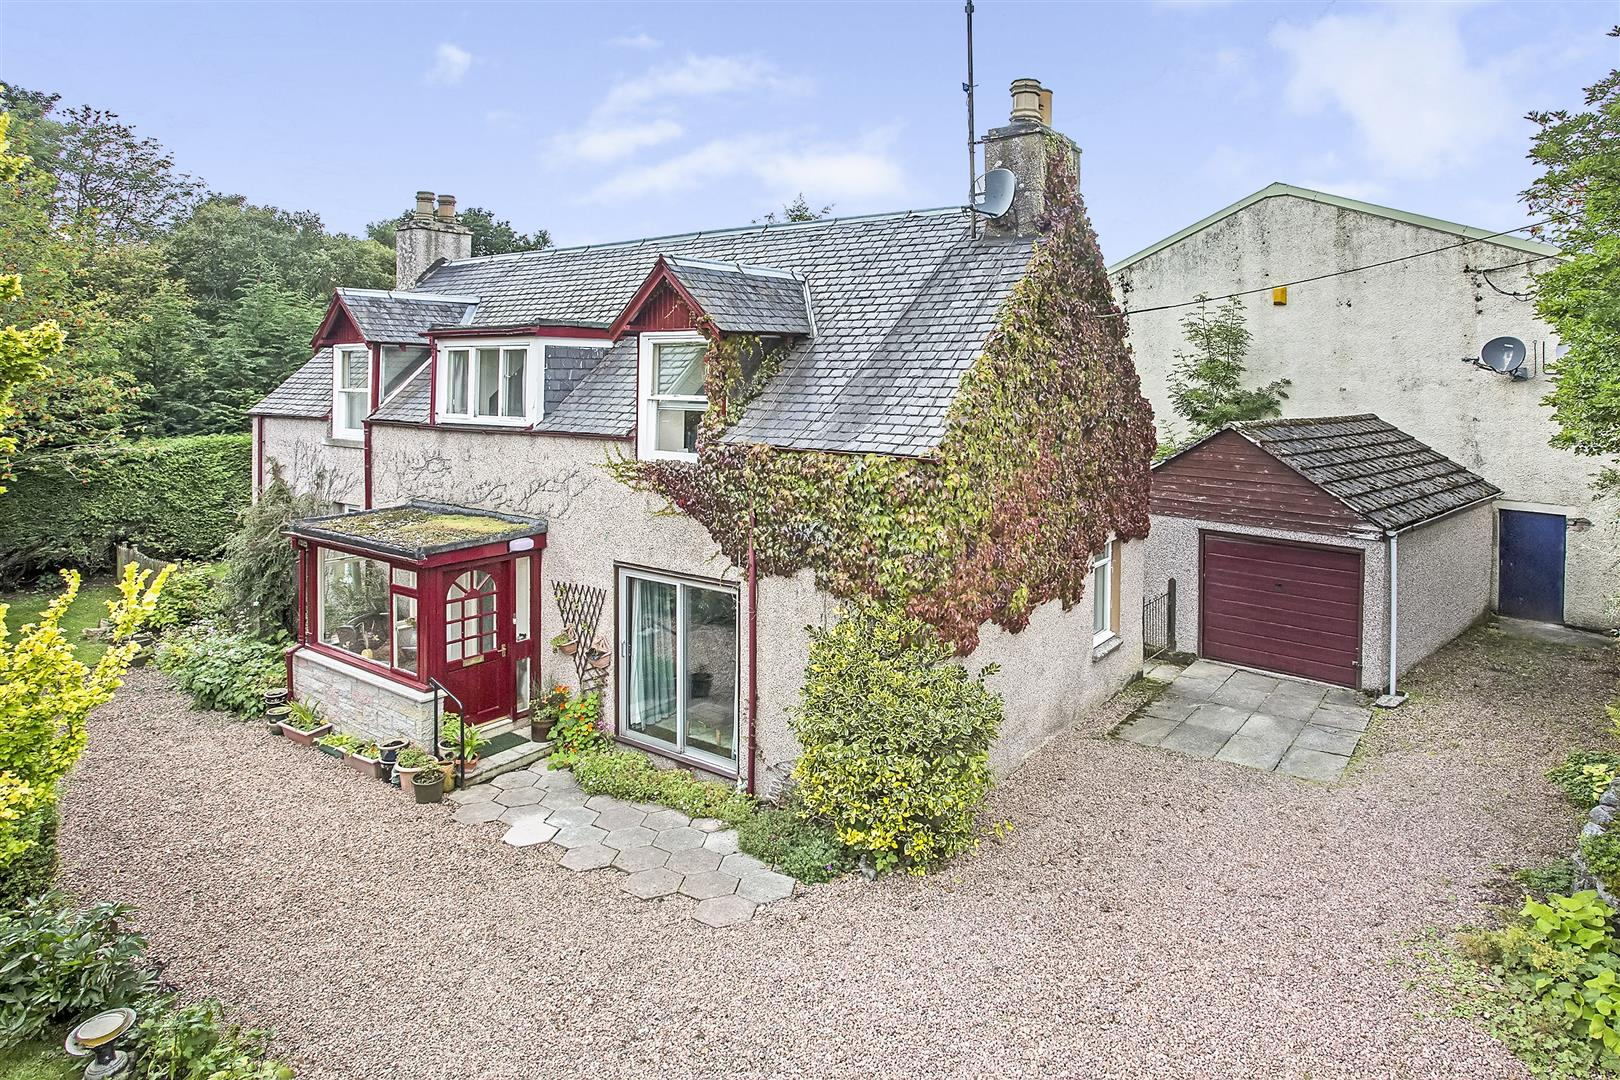 Smithy Cottage, Main Street, Kirkmichael, Blairgowrie, Perthshire, PH10 7NT, UK